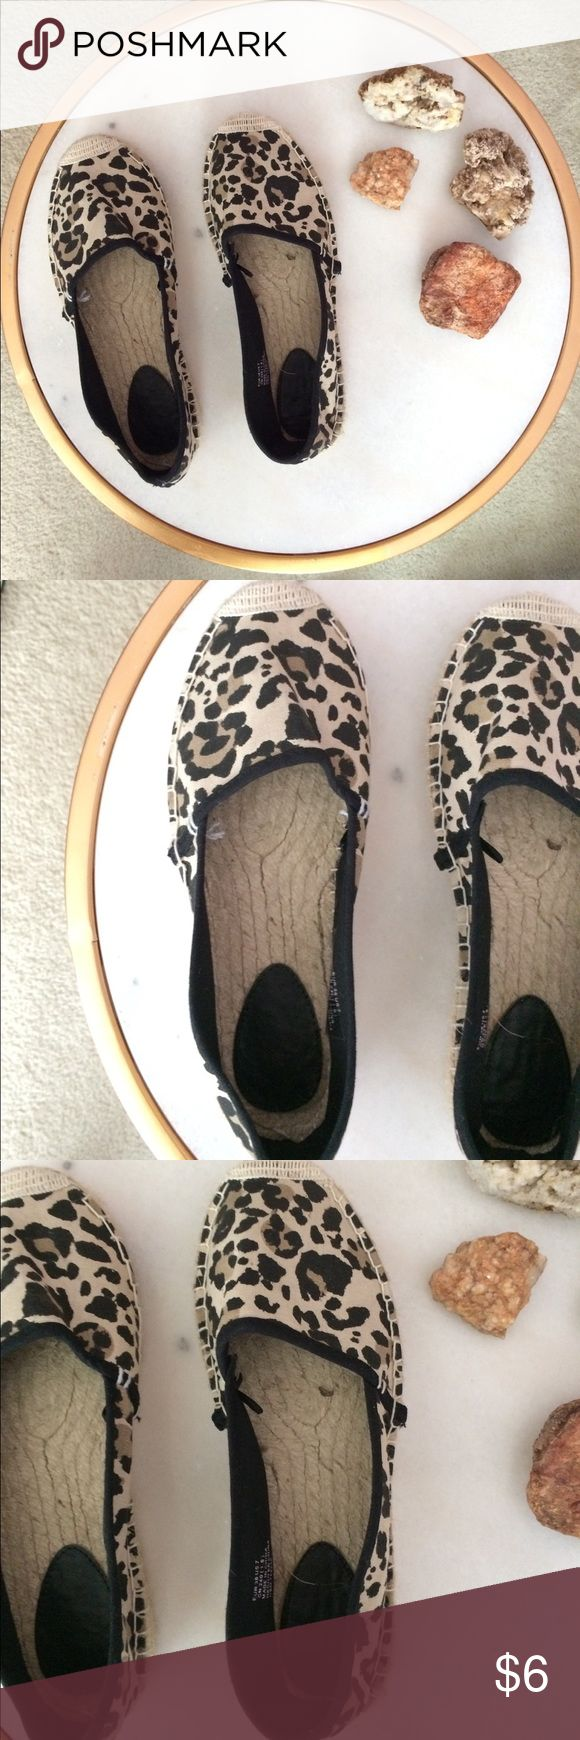 Leopard Espadrilles Minor wear and tear. Cute espadrilles from H&M. Feel free to ask questions for more details. H&M Shoes Espadrilles